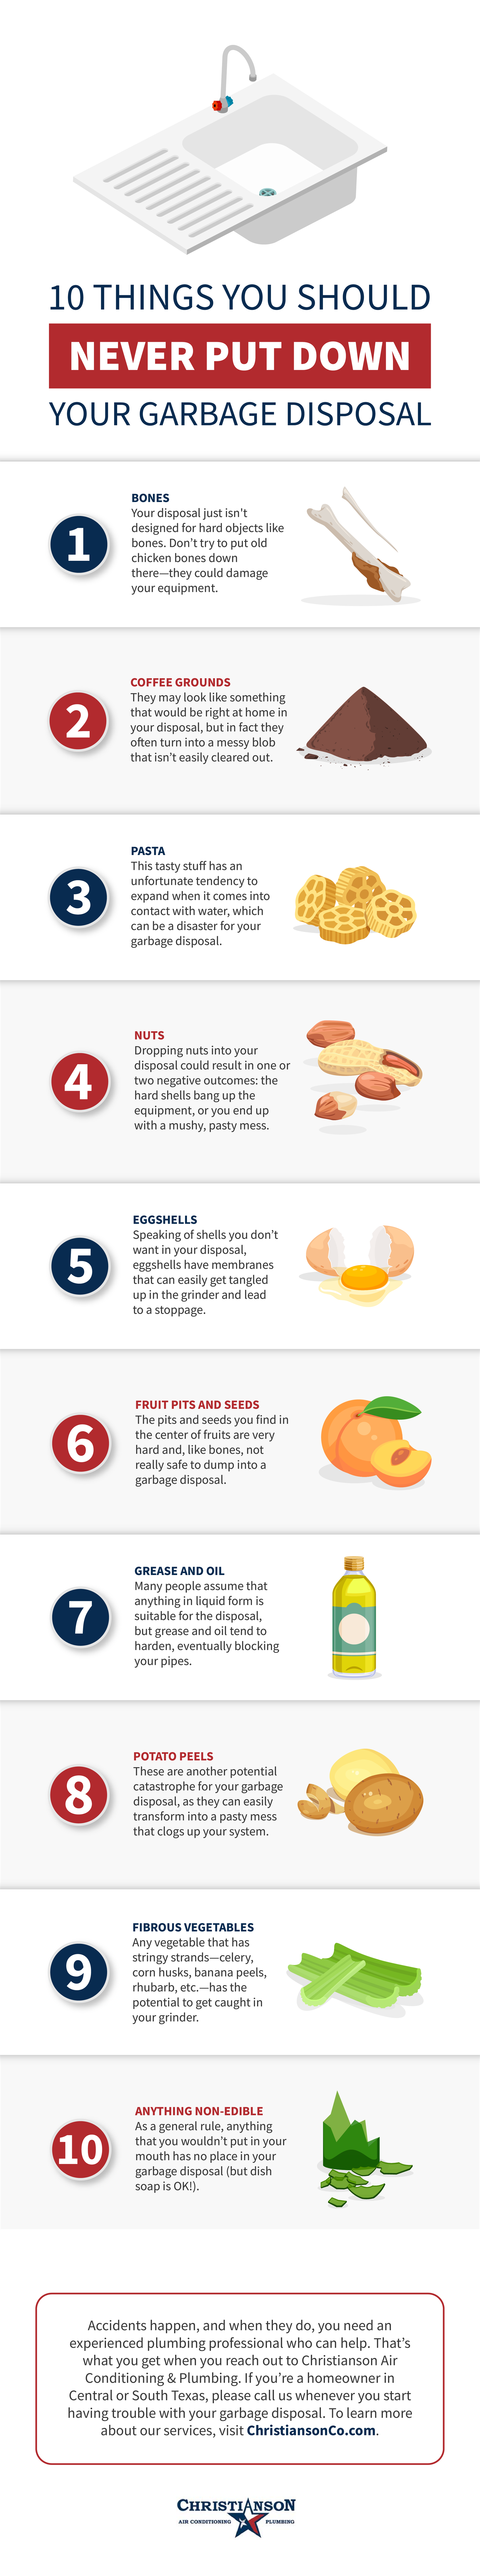 Things You Should Never Put Down Your Garbage Disposal Infographic